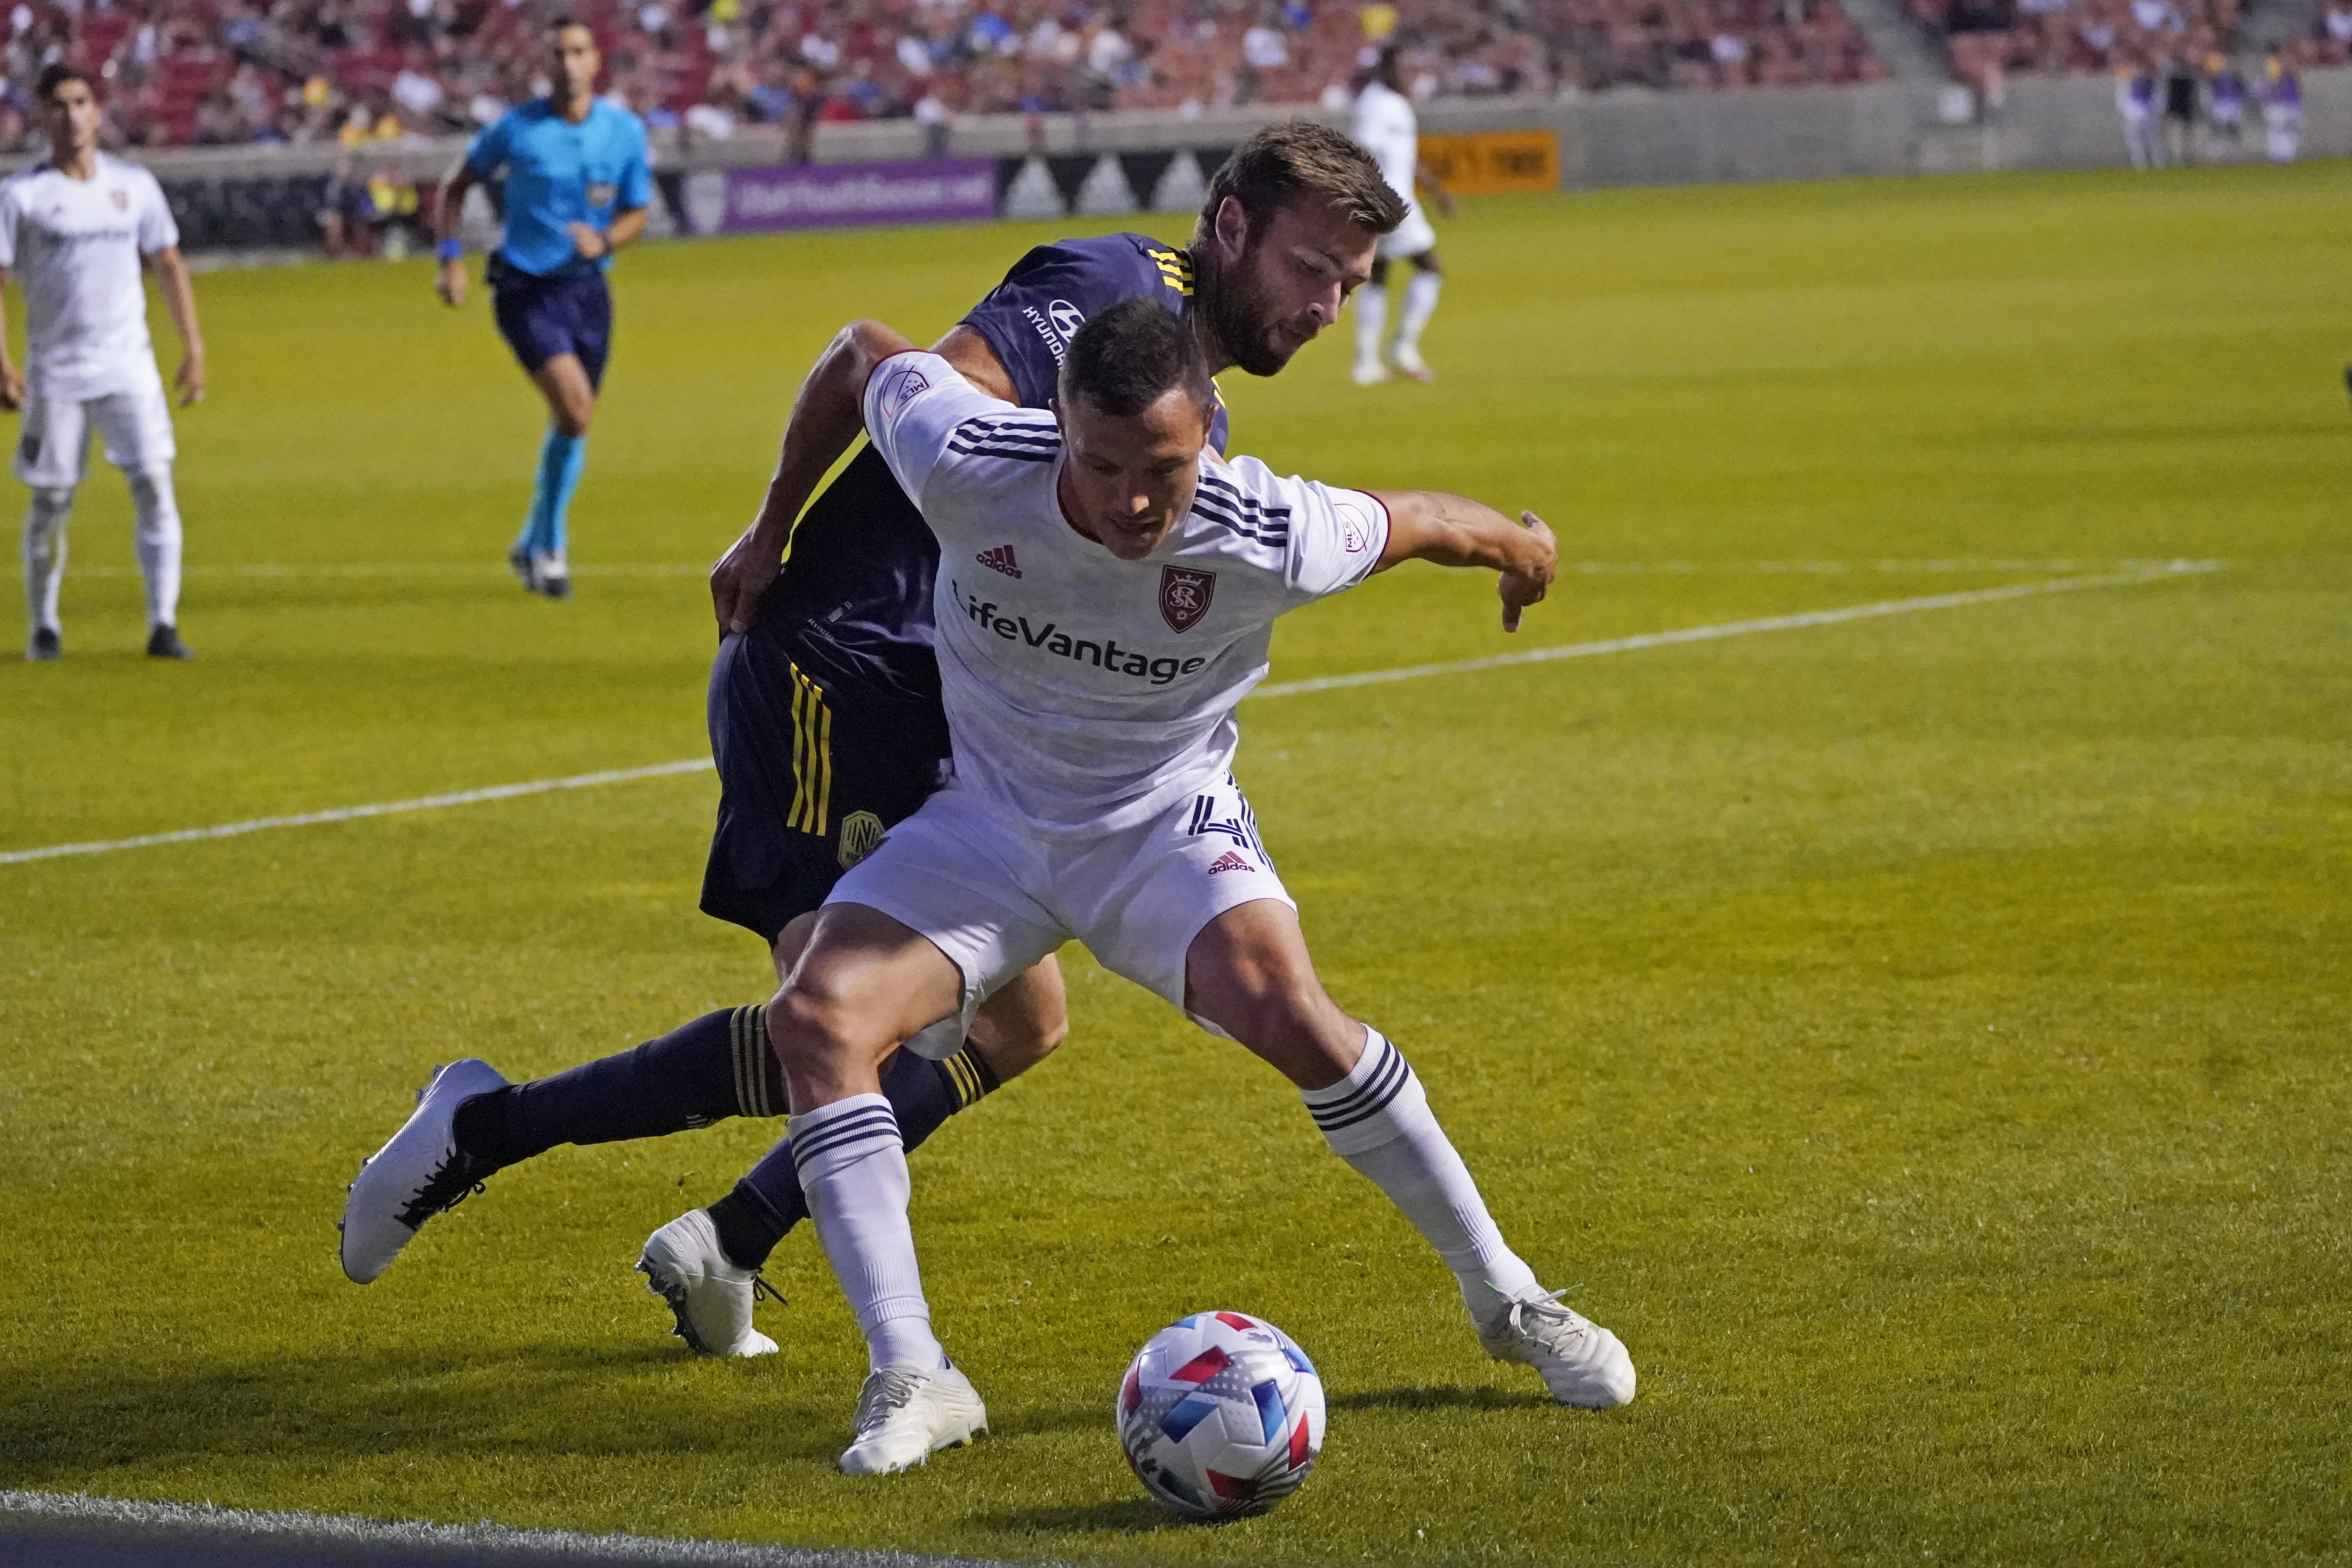 Real Salt Lake's Ddonny Toia and Nashville SC's Dave Romney battle for the ball during an MLS game on May 15, 2021.